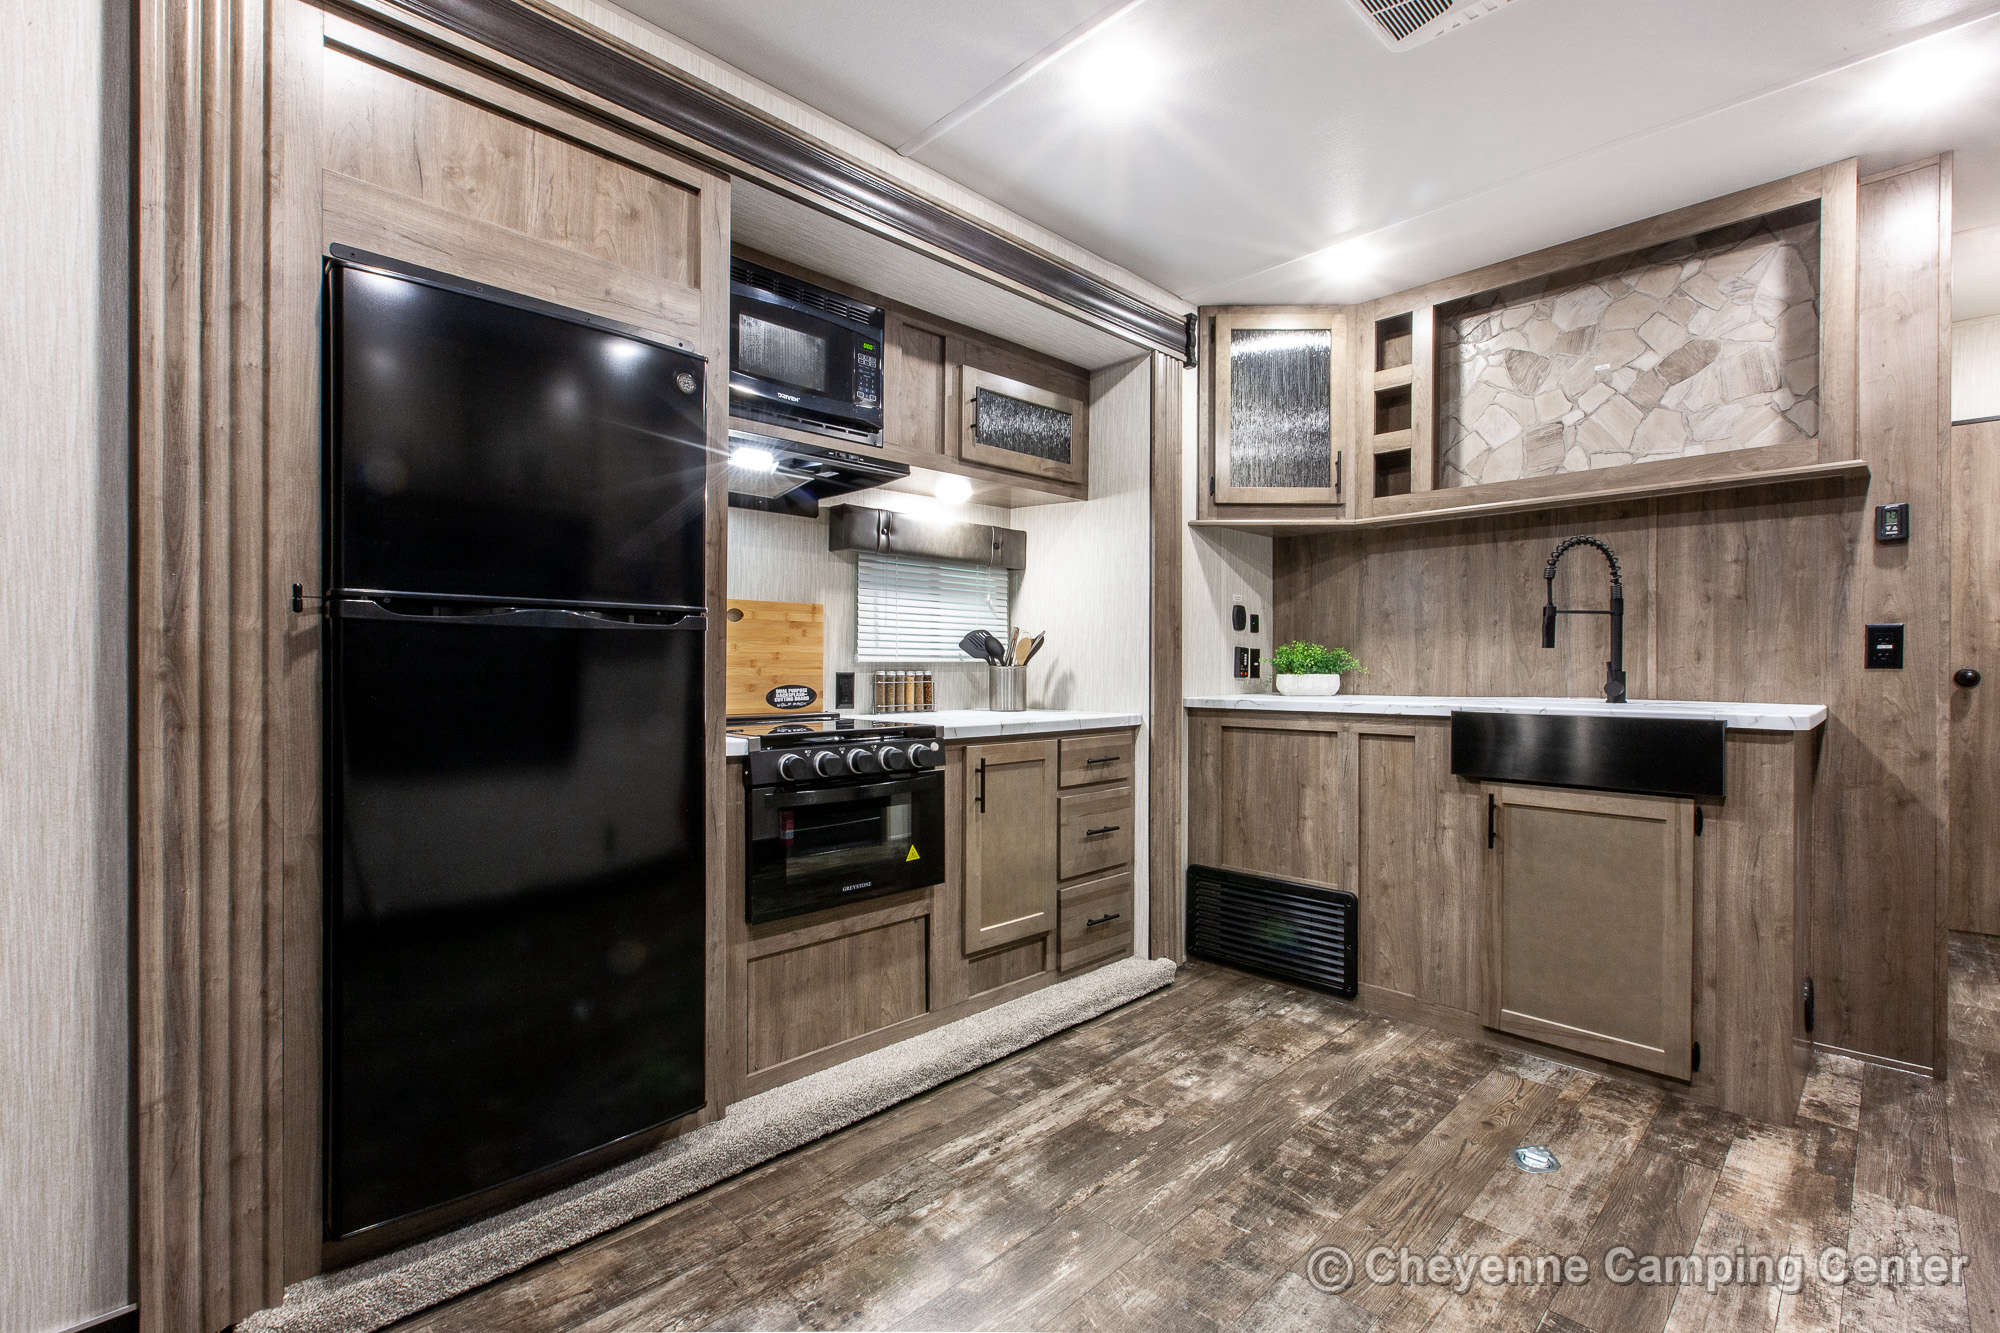 2021 Forest River Cherokee Wolf Pack 23PACK15 Bunkhouse Toy Hauler Travel Trailer Interior Image